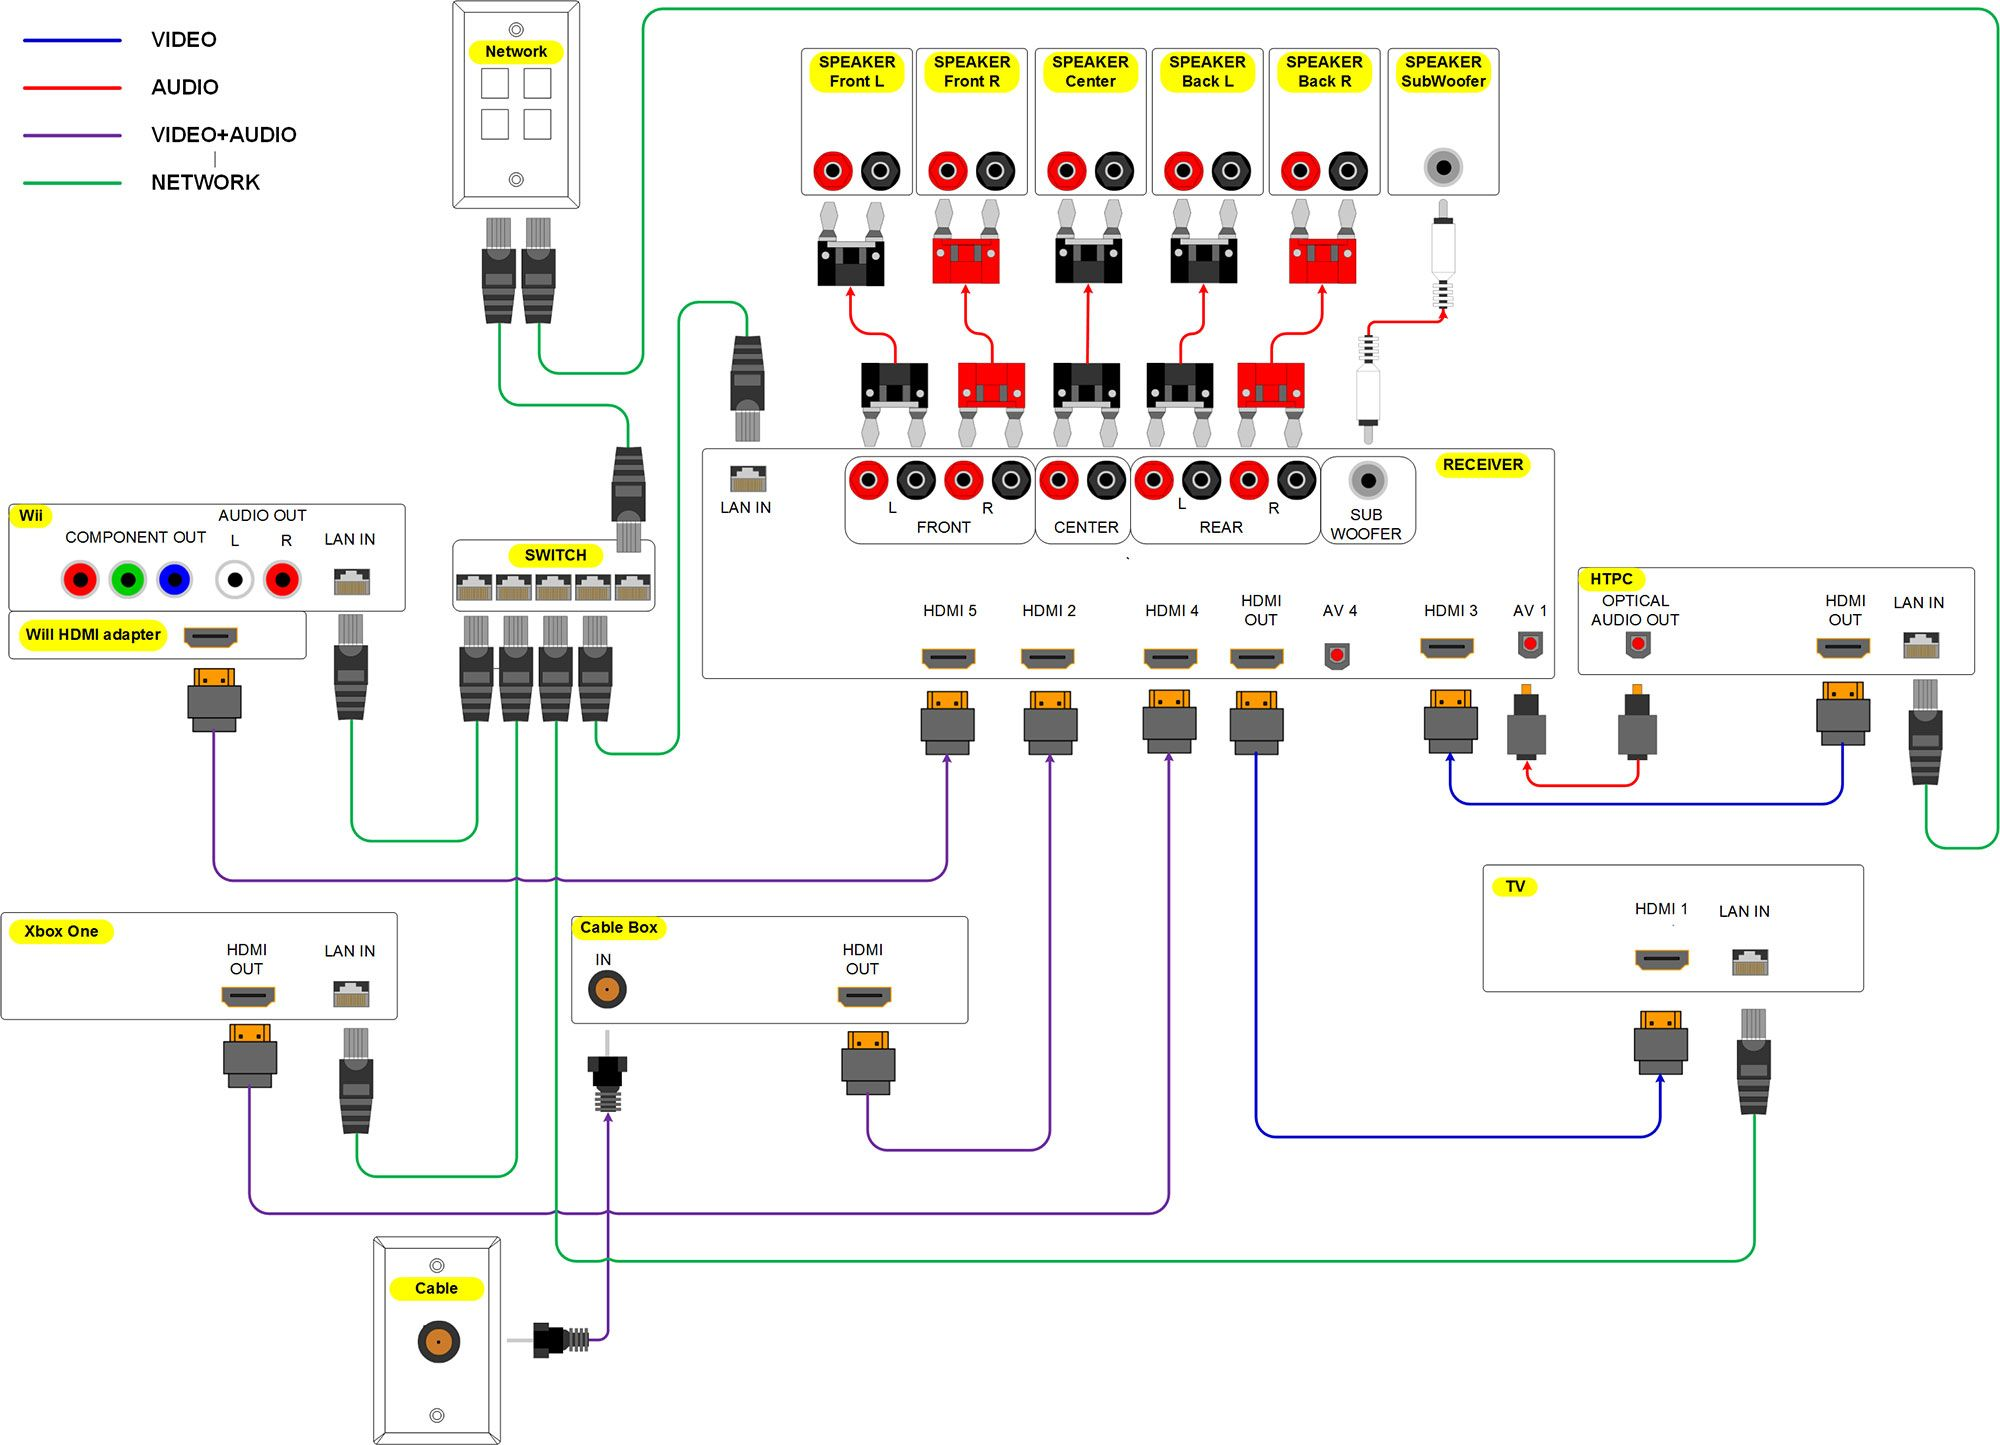 small resolution of home theater wiring diagram click it to see the big 2000 pixel wide 2000 mustang stereo wiring home stereo wiring